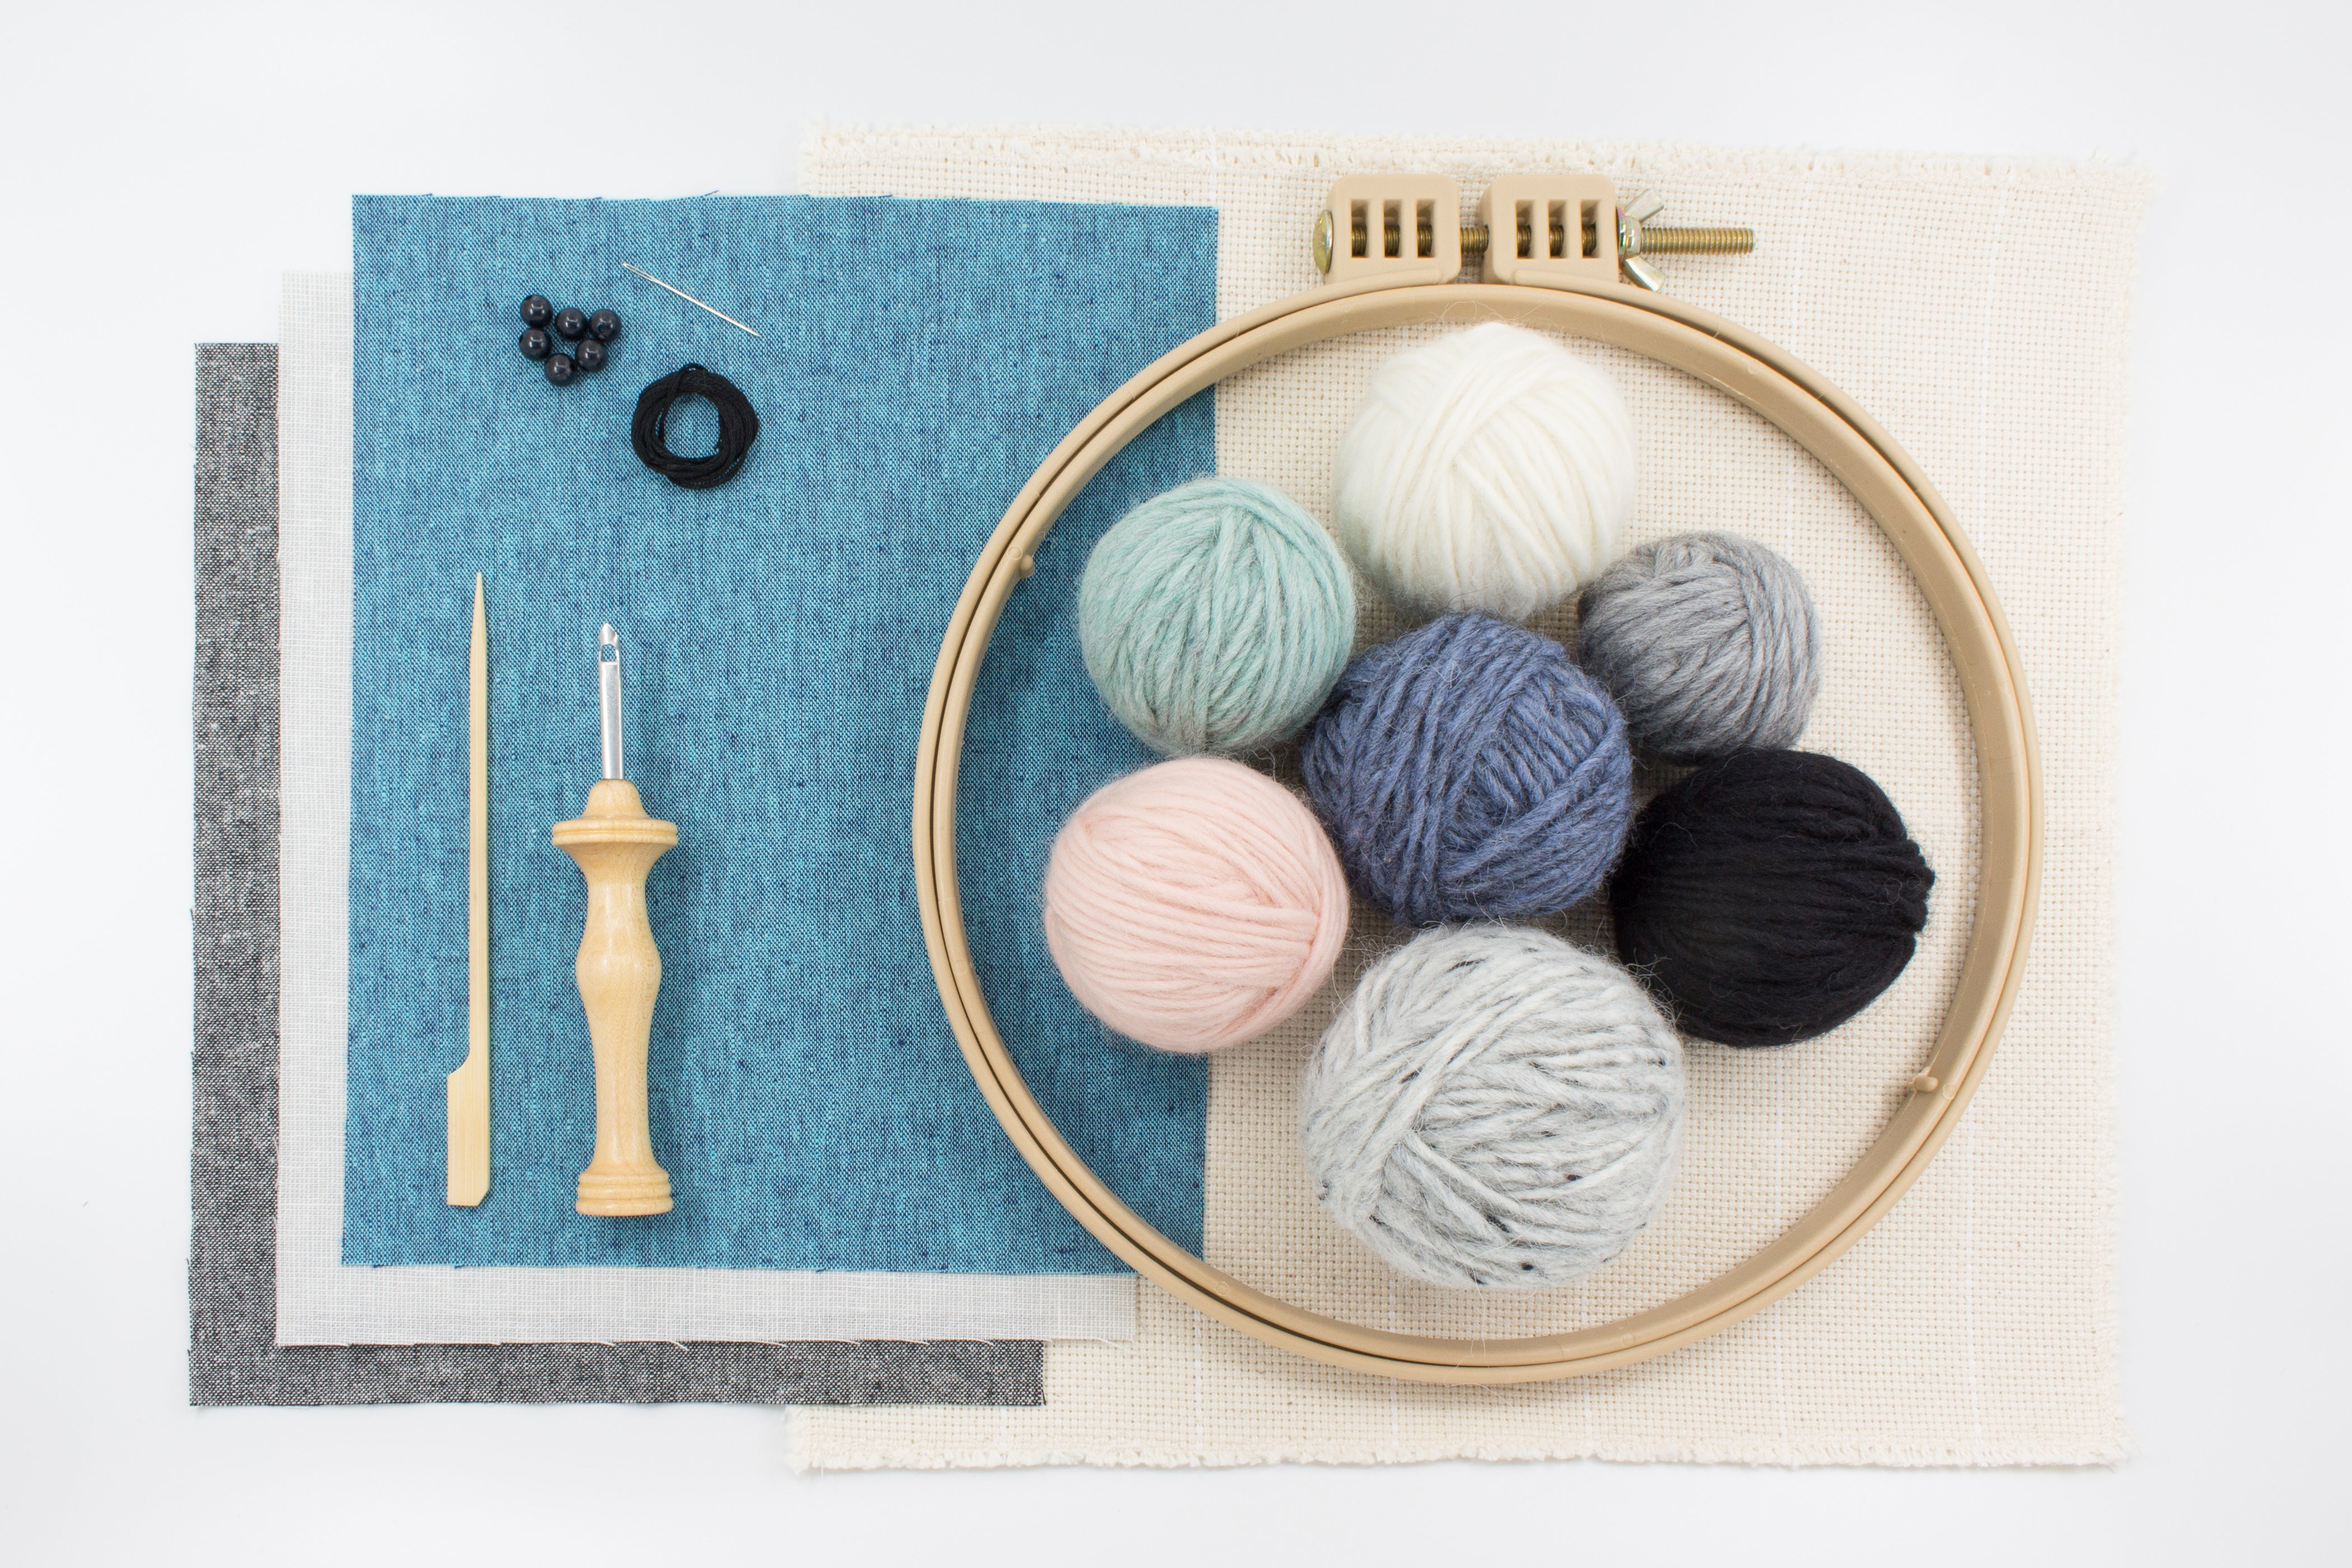 Punch needle stuffed animal kit supplies